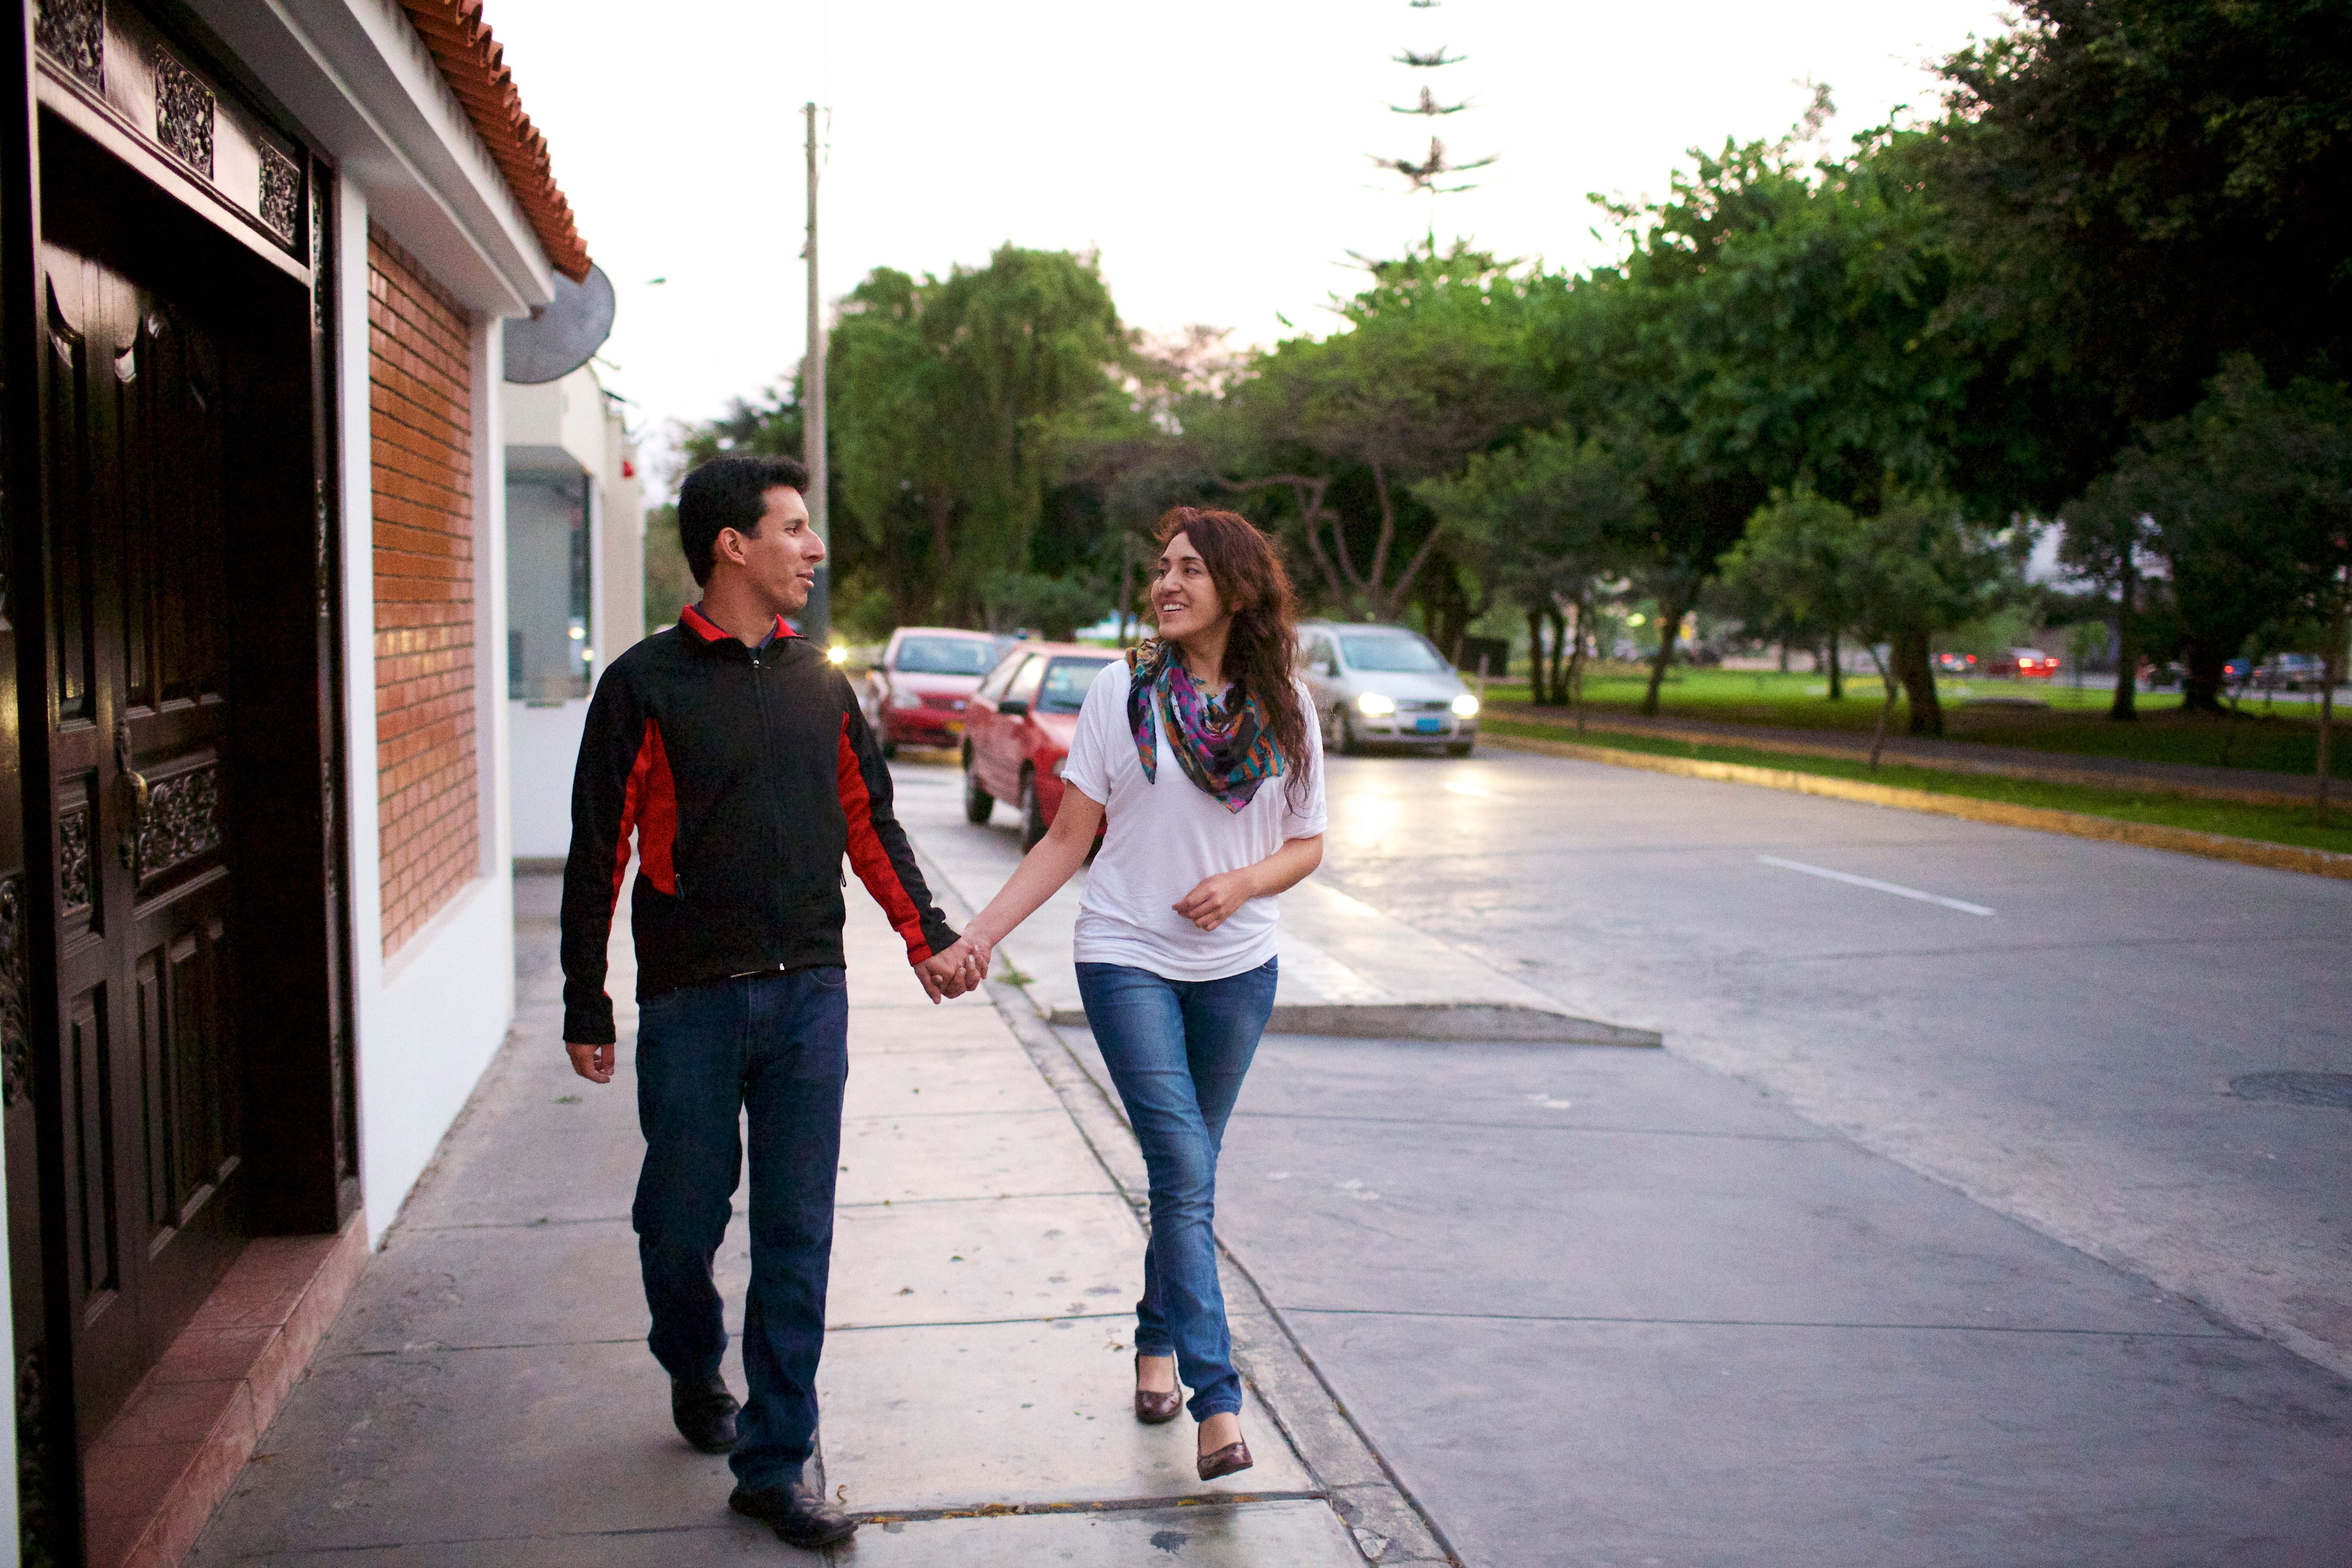 A husband and wife holding hands and walking down a sidewalk.